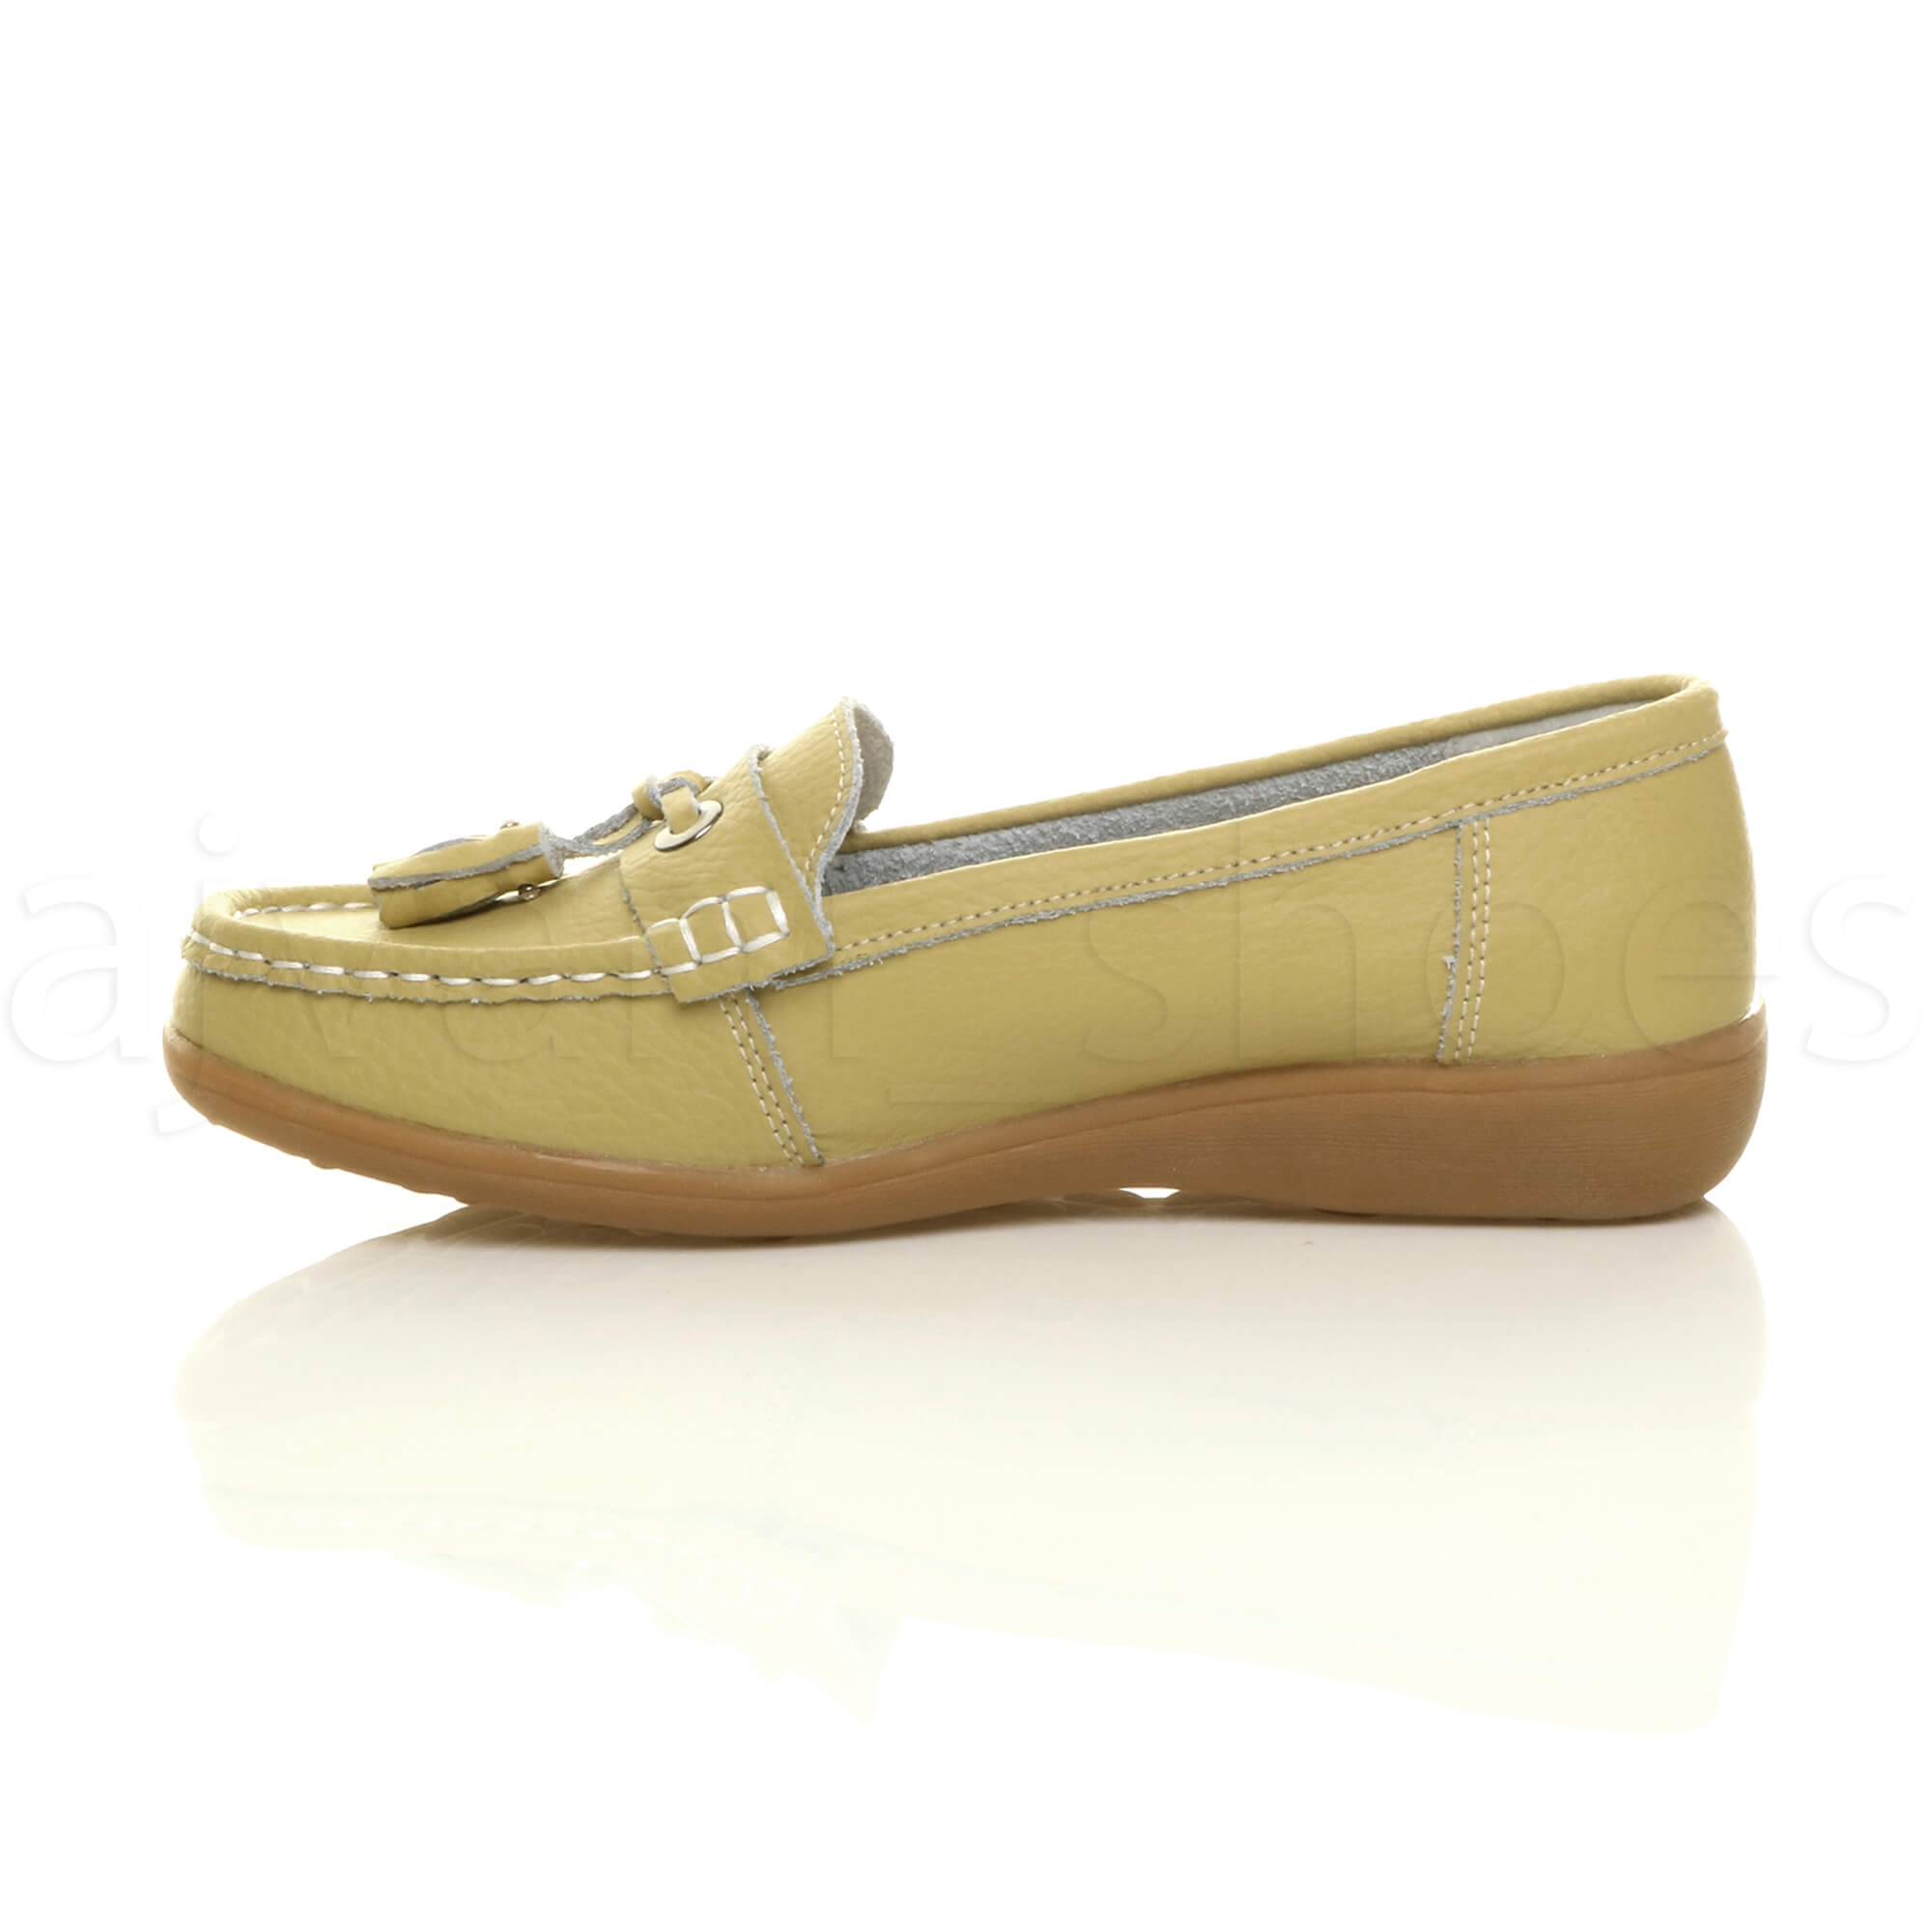 WOMENS-LADIES-LOW-HEEL-WEDGE-LEATHER-TASSEL-LOAFERS-COMFORT-MOCCASINS-SHOES-SIZE thumbnail 36